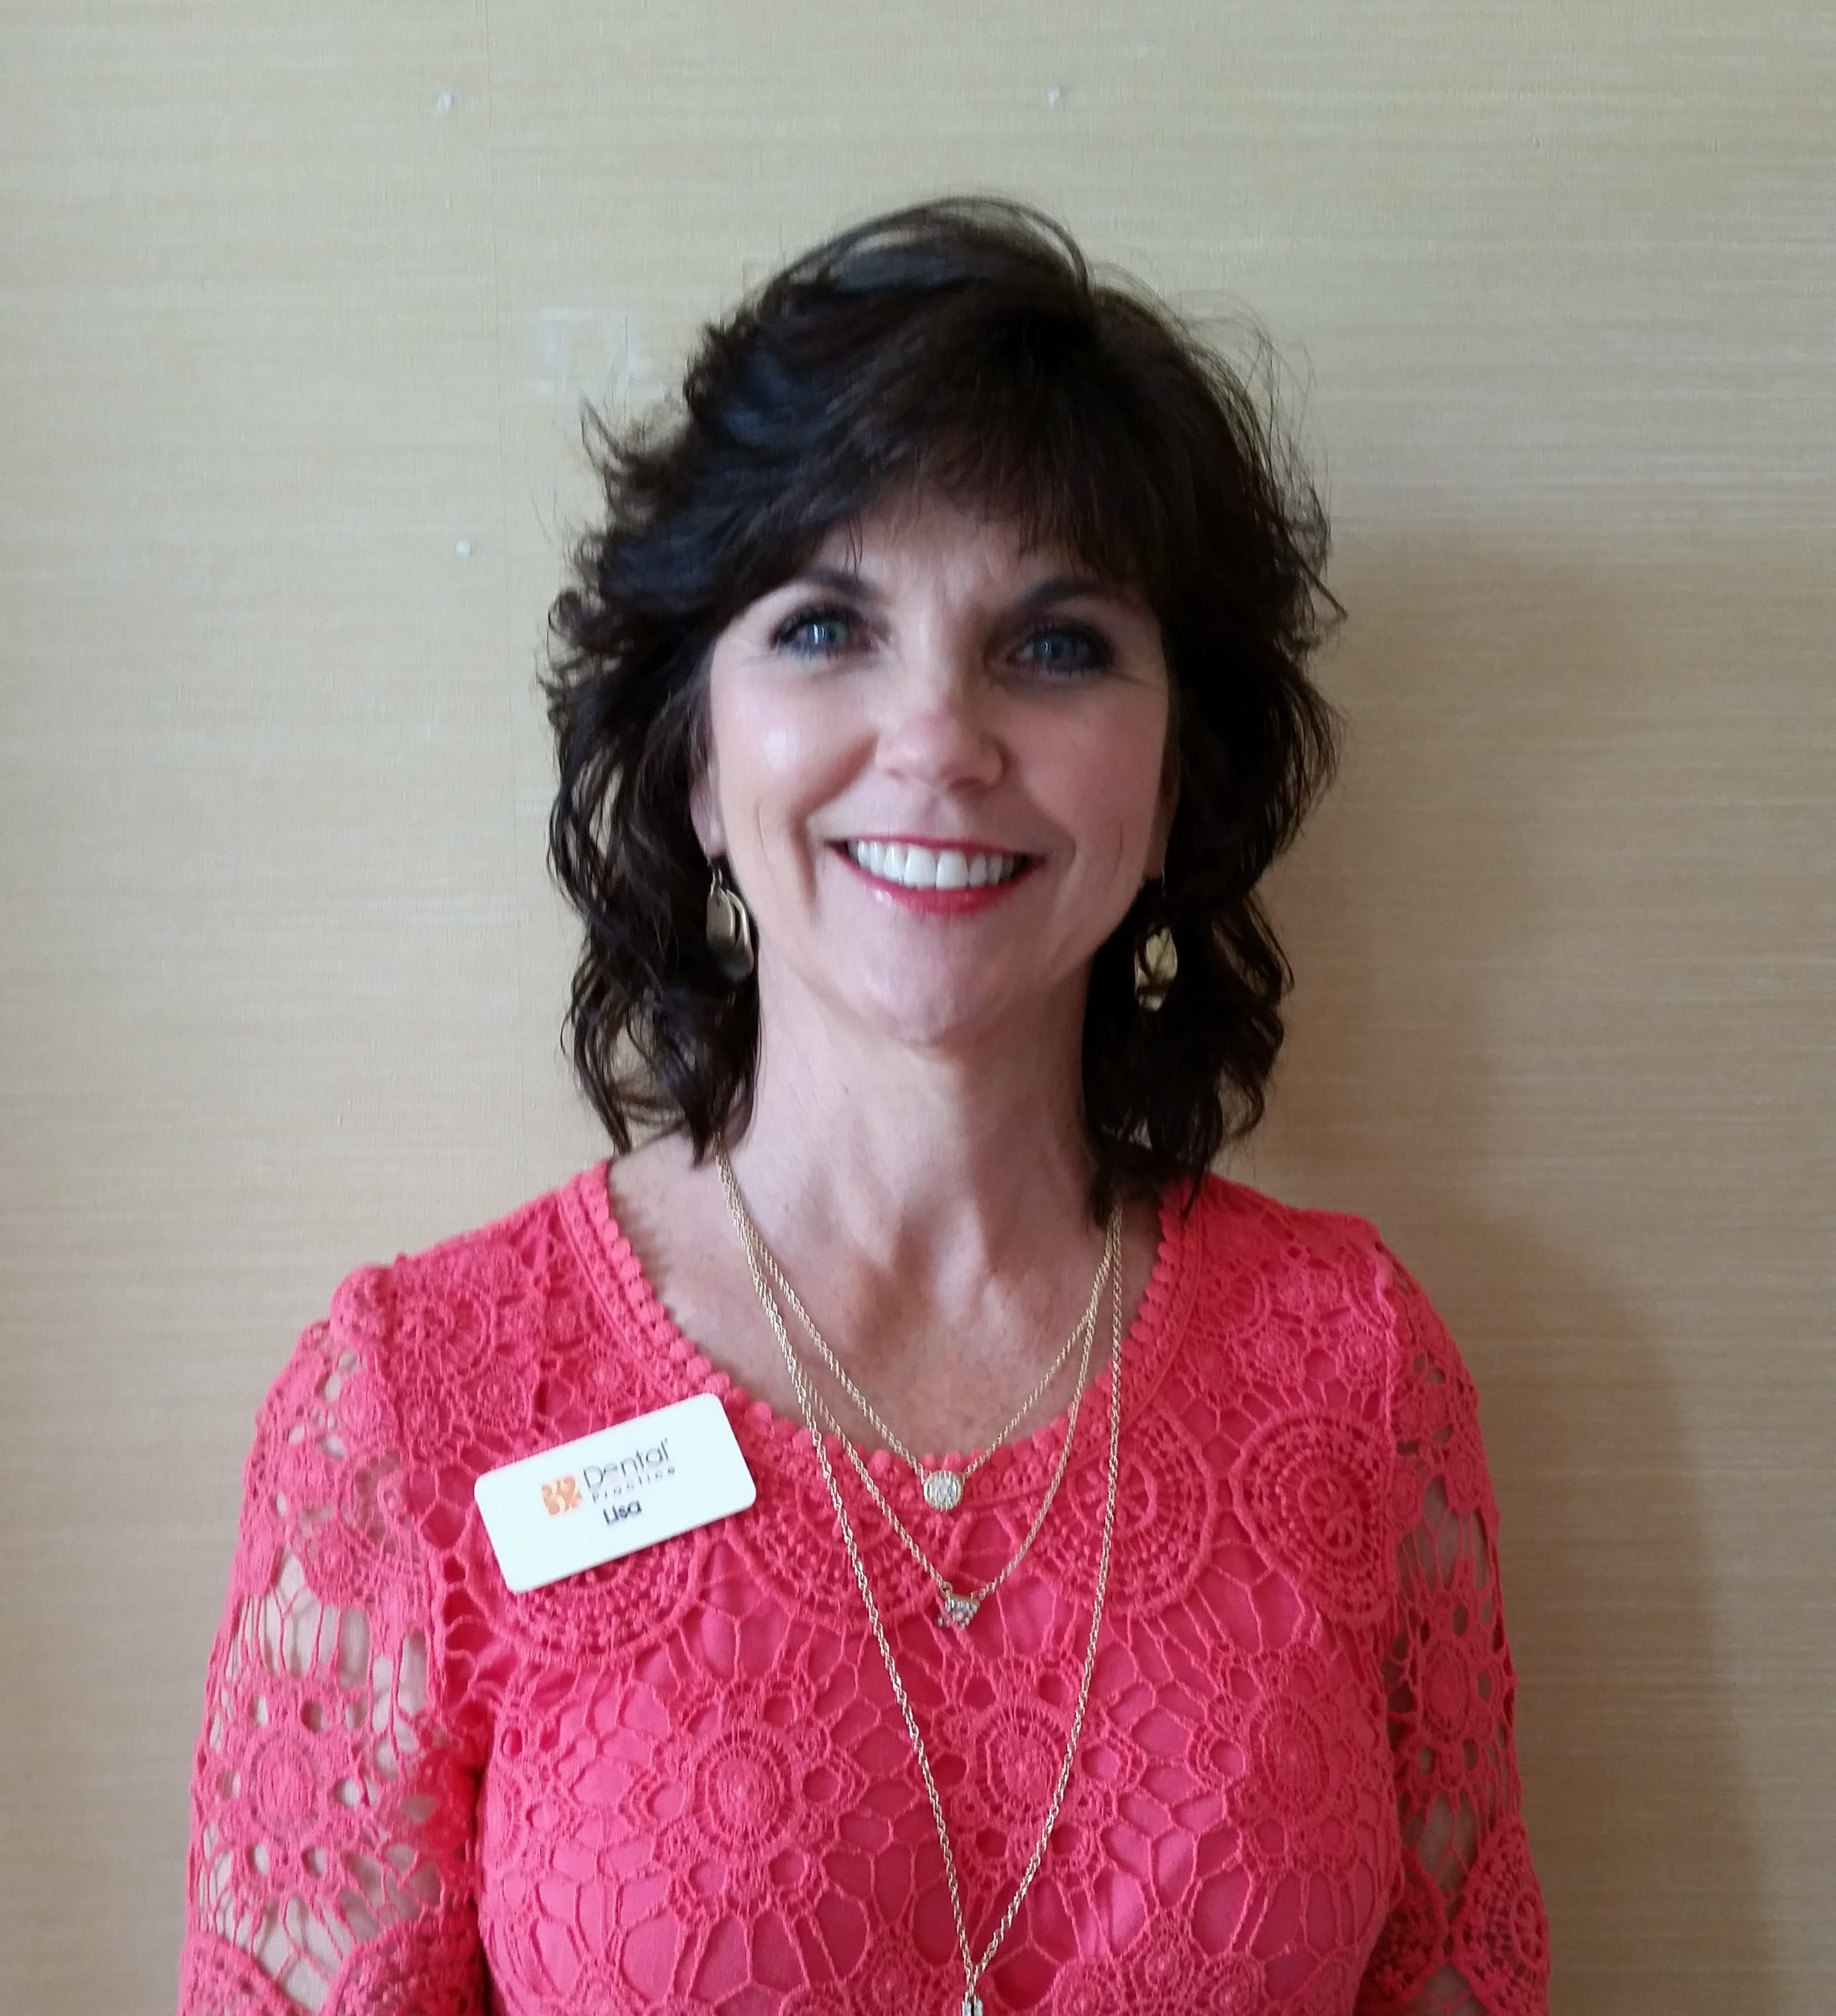 kenesaw single girls Single men in kennesaw, ga are you a single woman looking for a meaningful relationship with a single man in kennesaw, ga eharmony is committed to helping women like you find the man of her dreams in kennesaw.